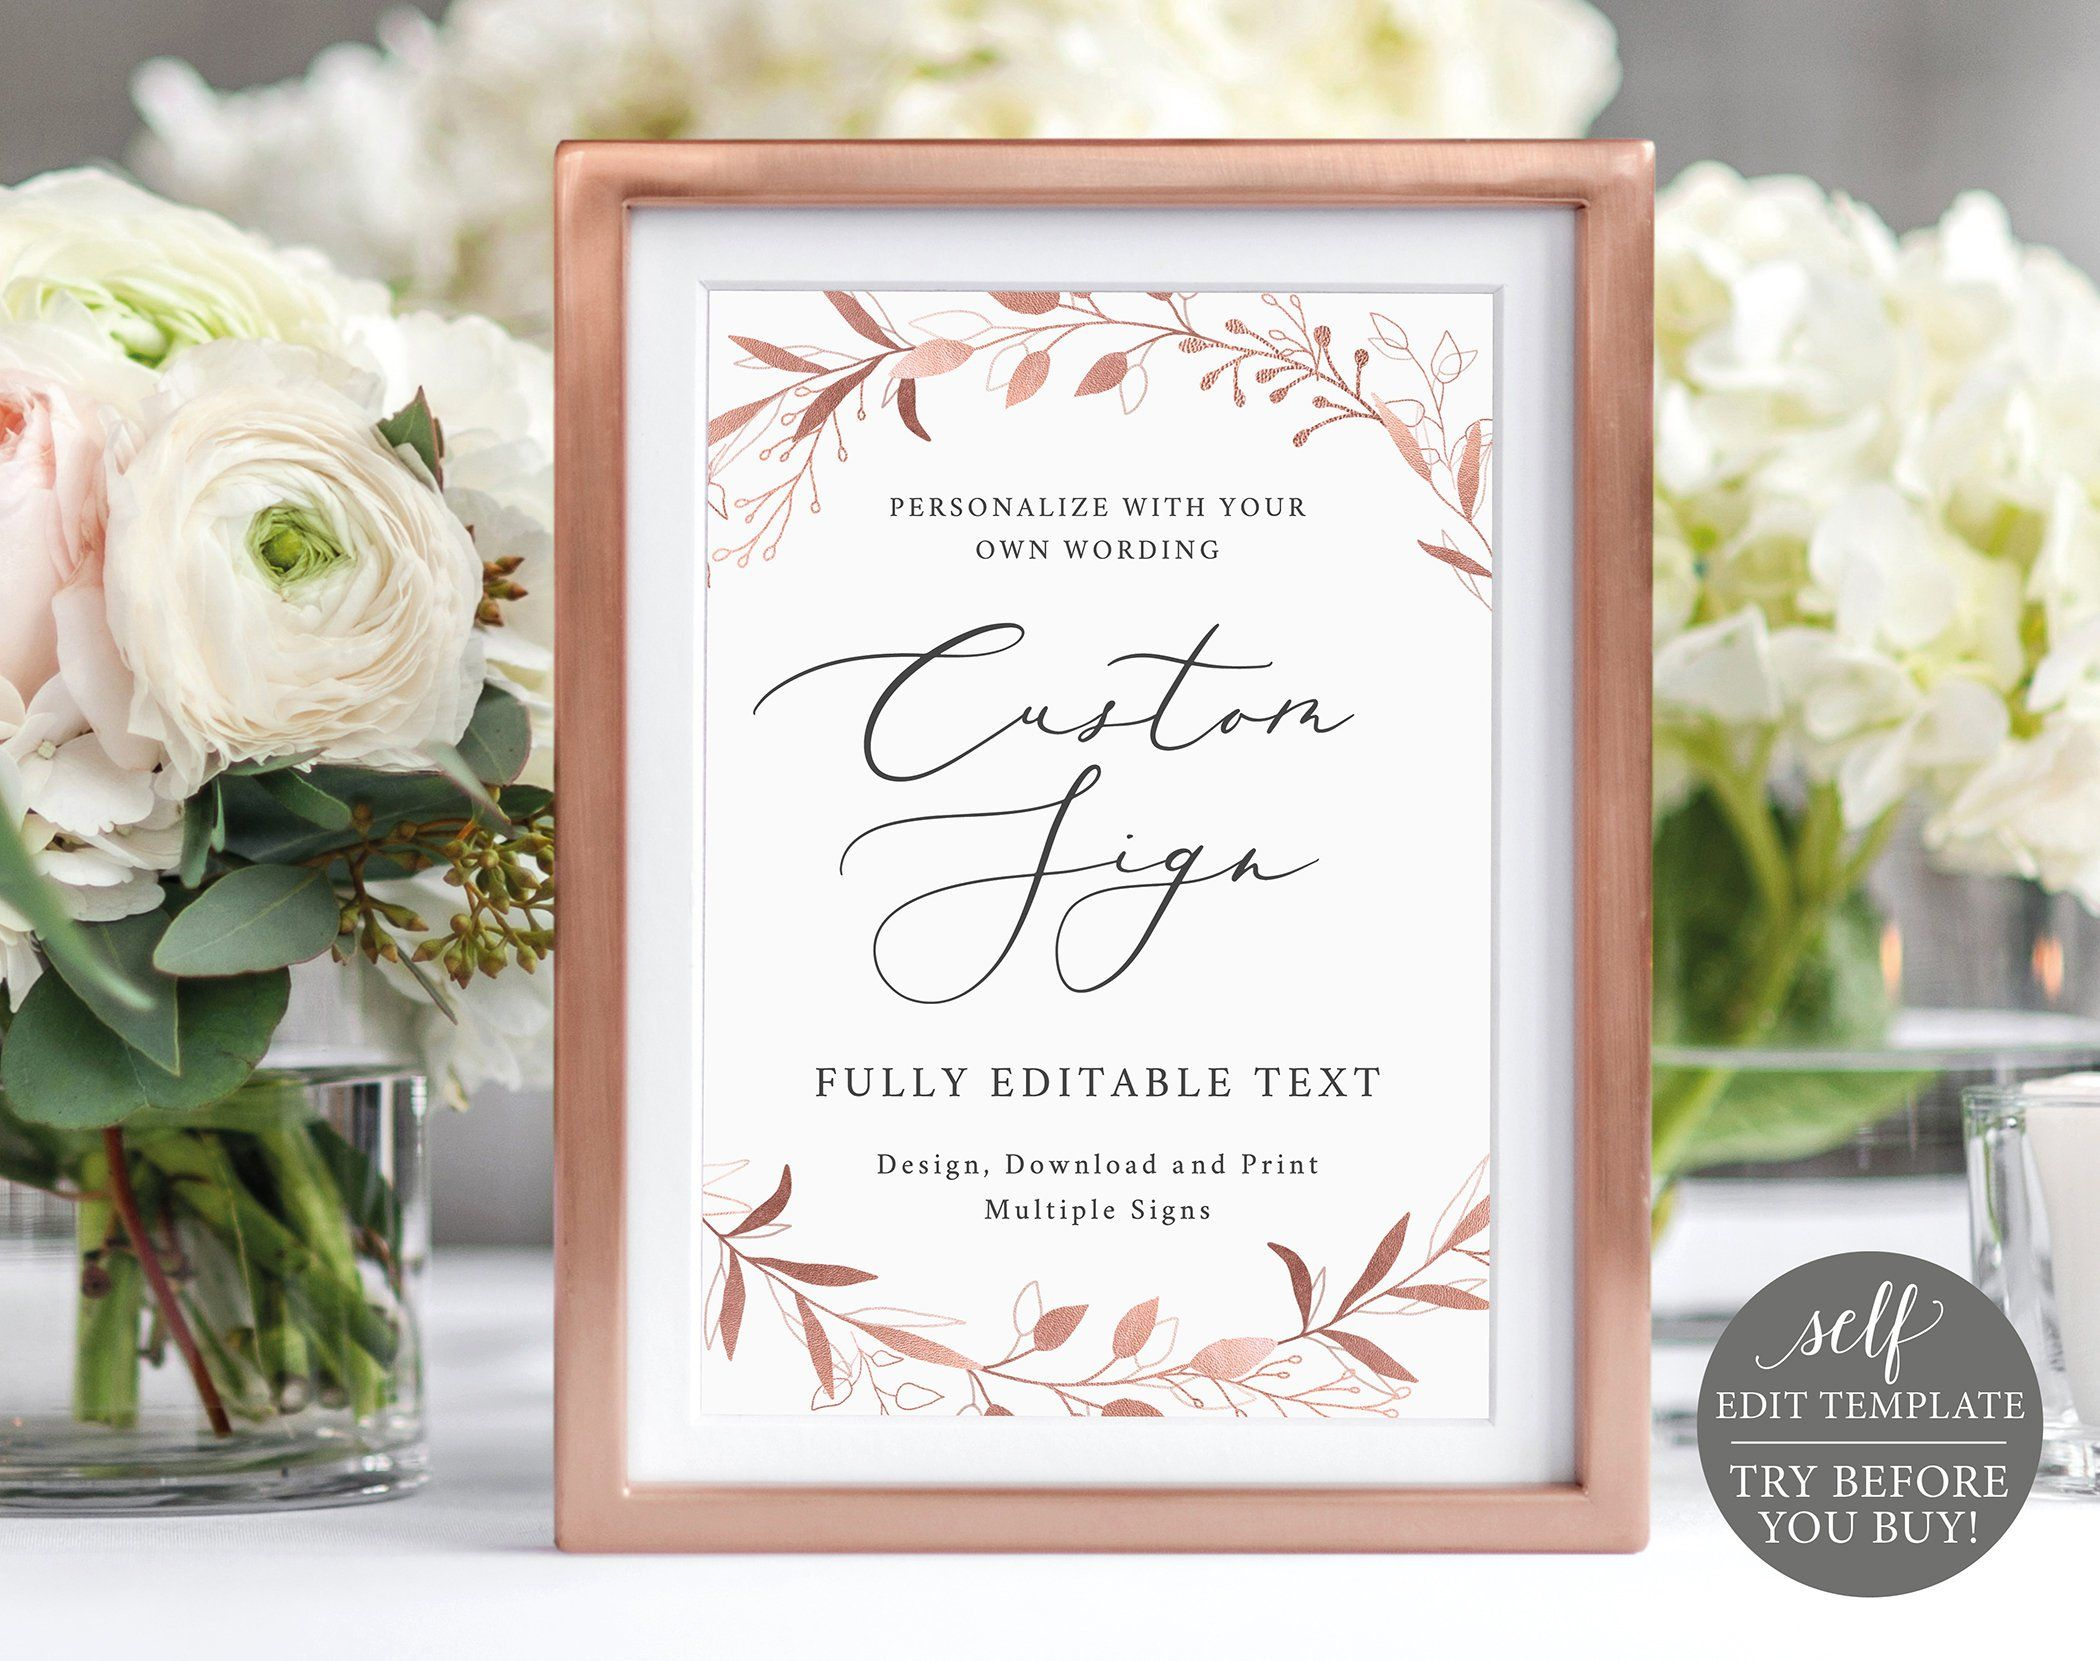 Create Multiple Signs Template, 5x7 Rose Gold Foliage